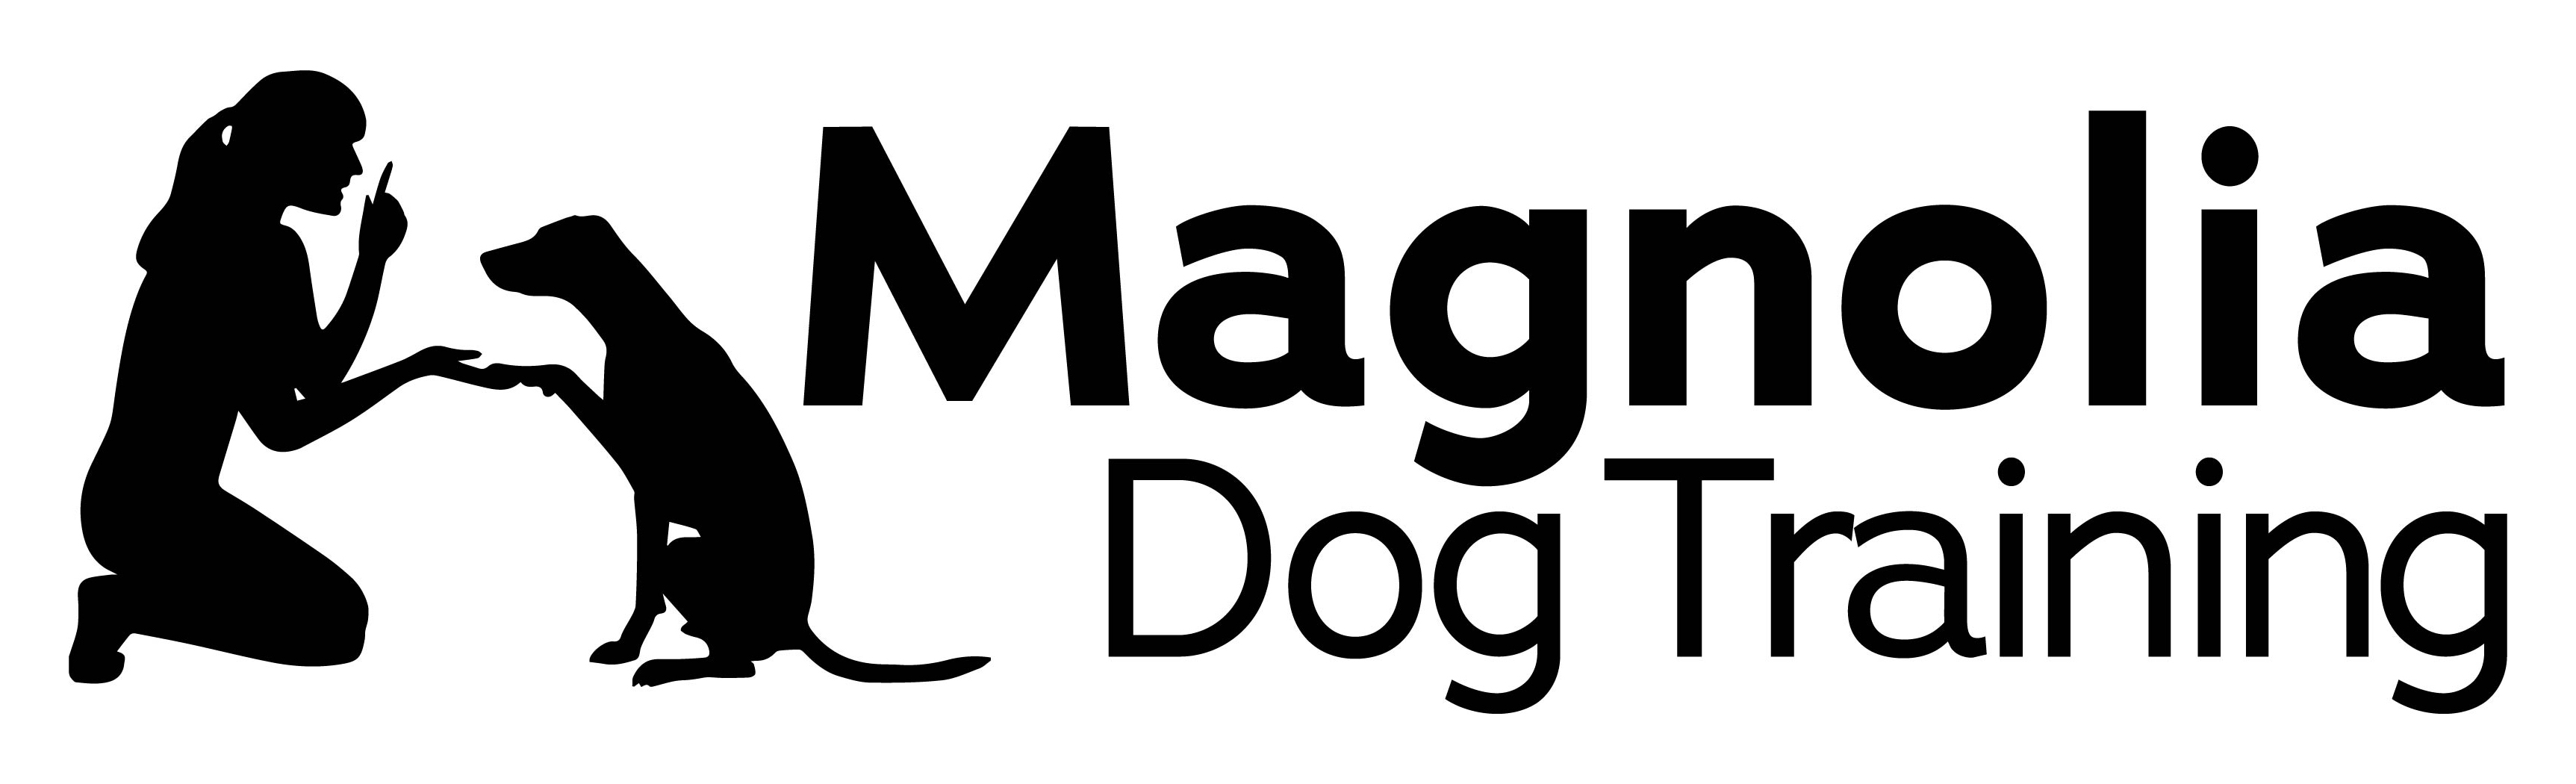 The Magnolia Dog Training Company